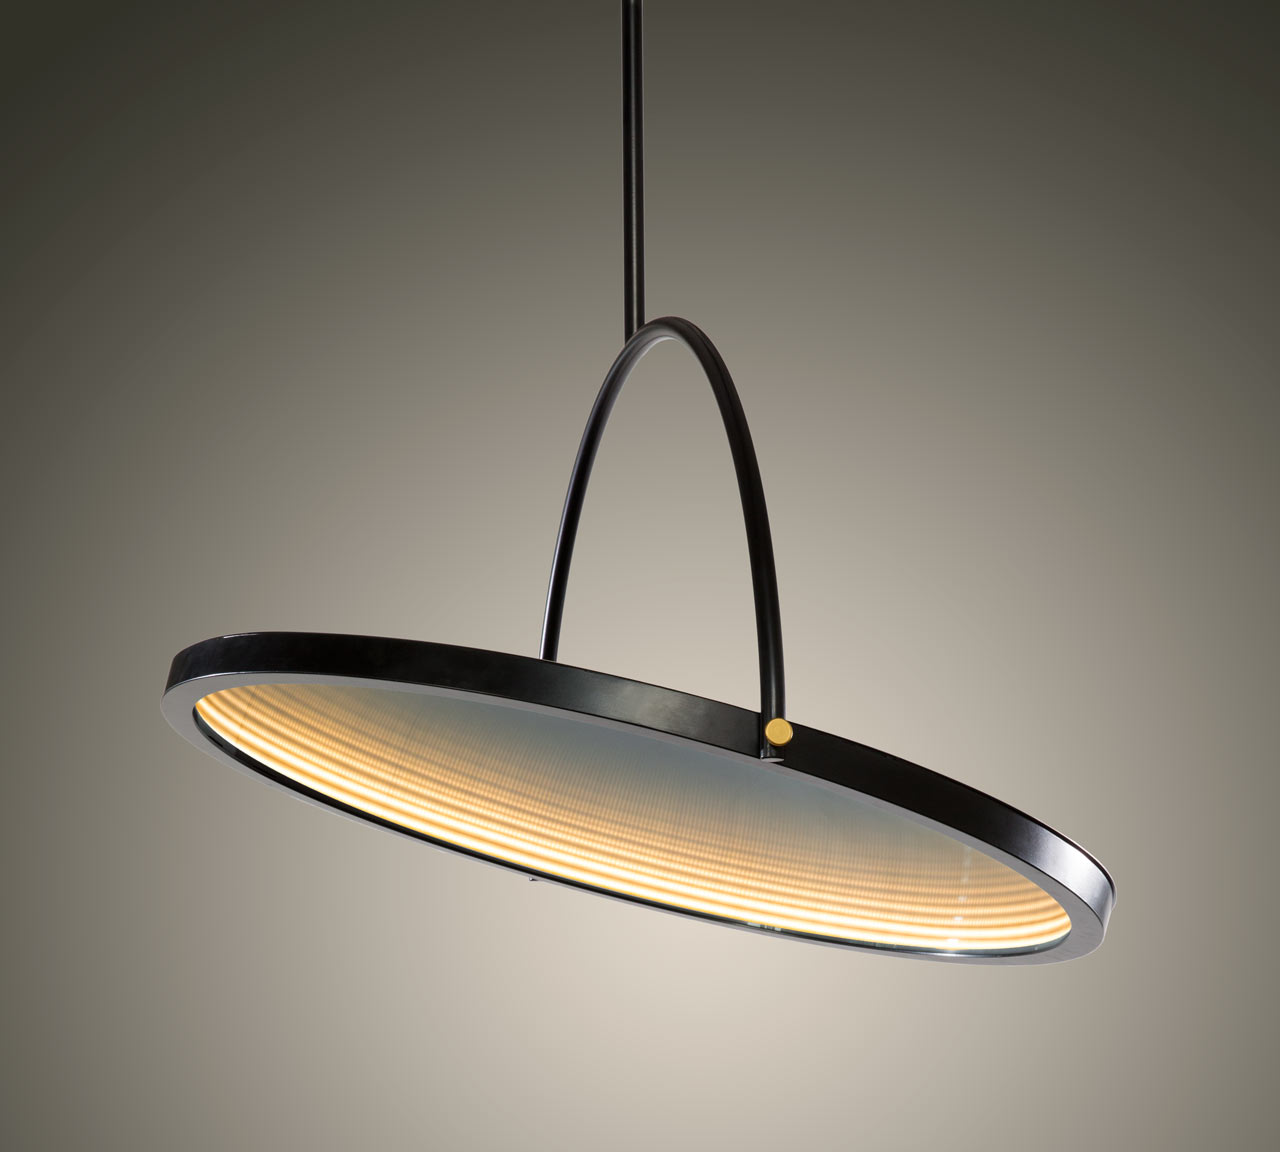 OBLIO: A Mirror Turned Lamp, a Lamp Turned Mirror